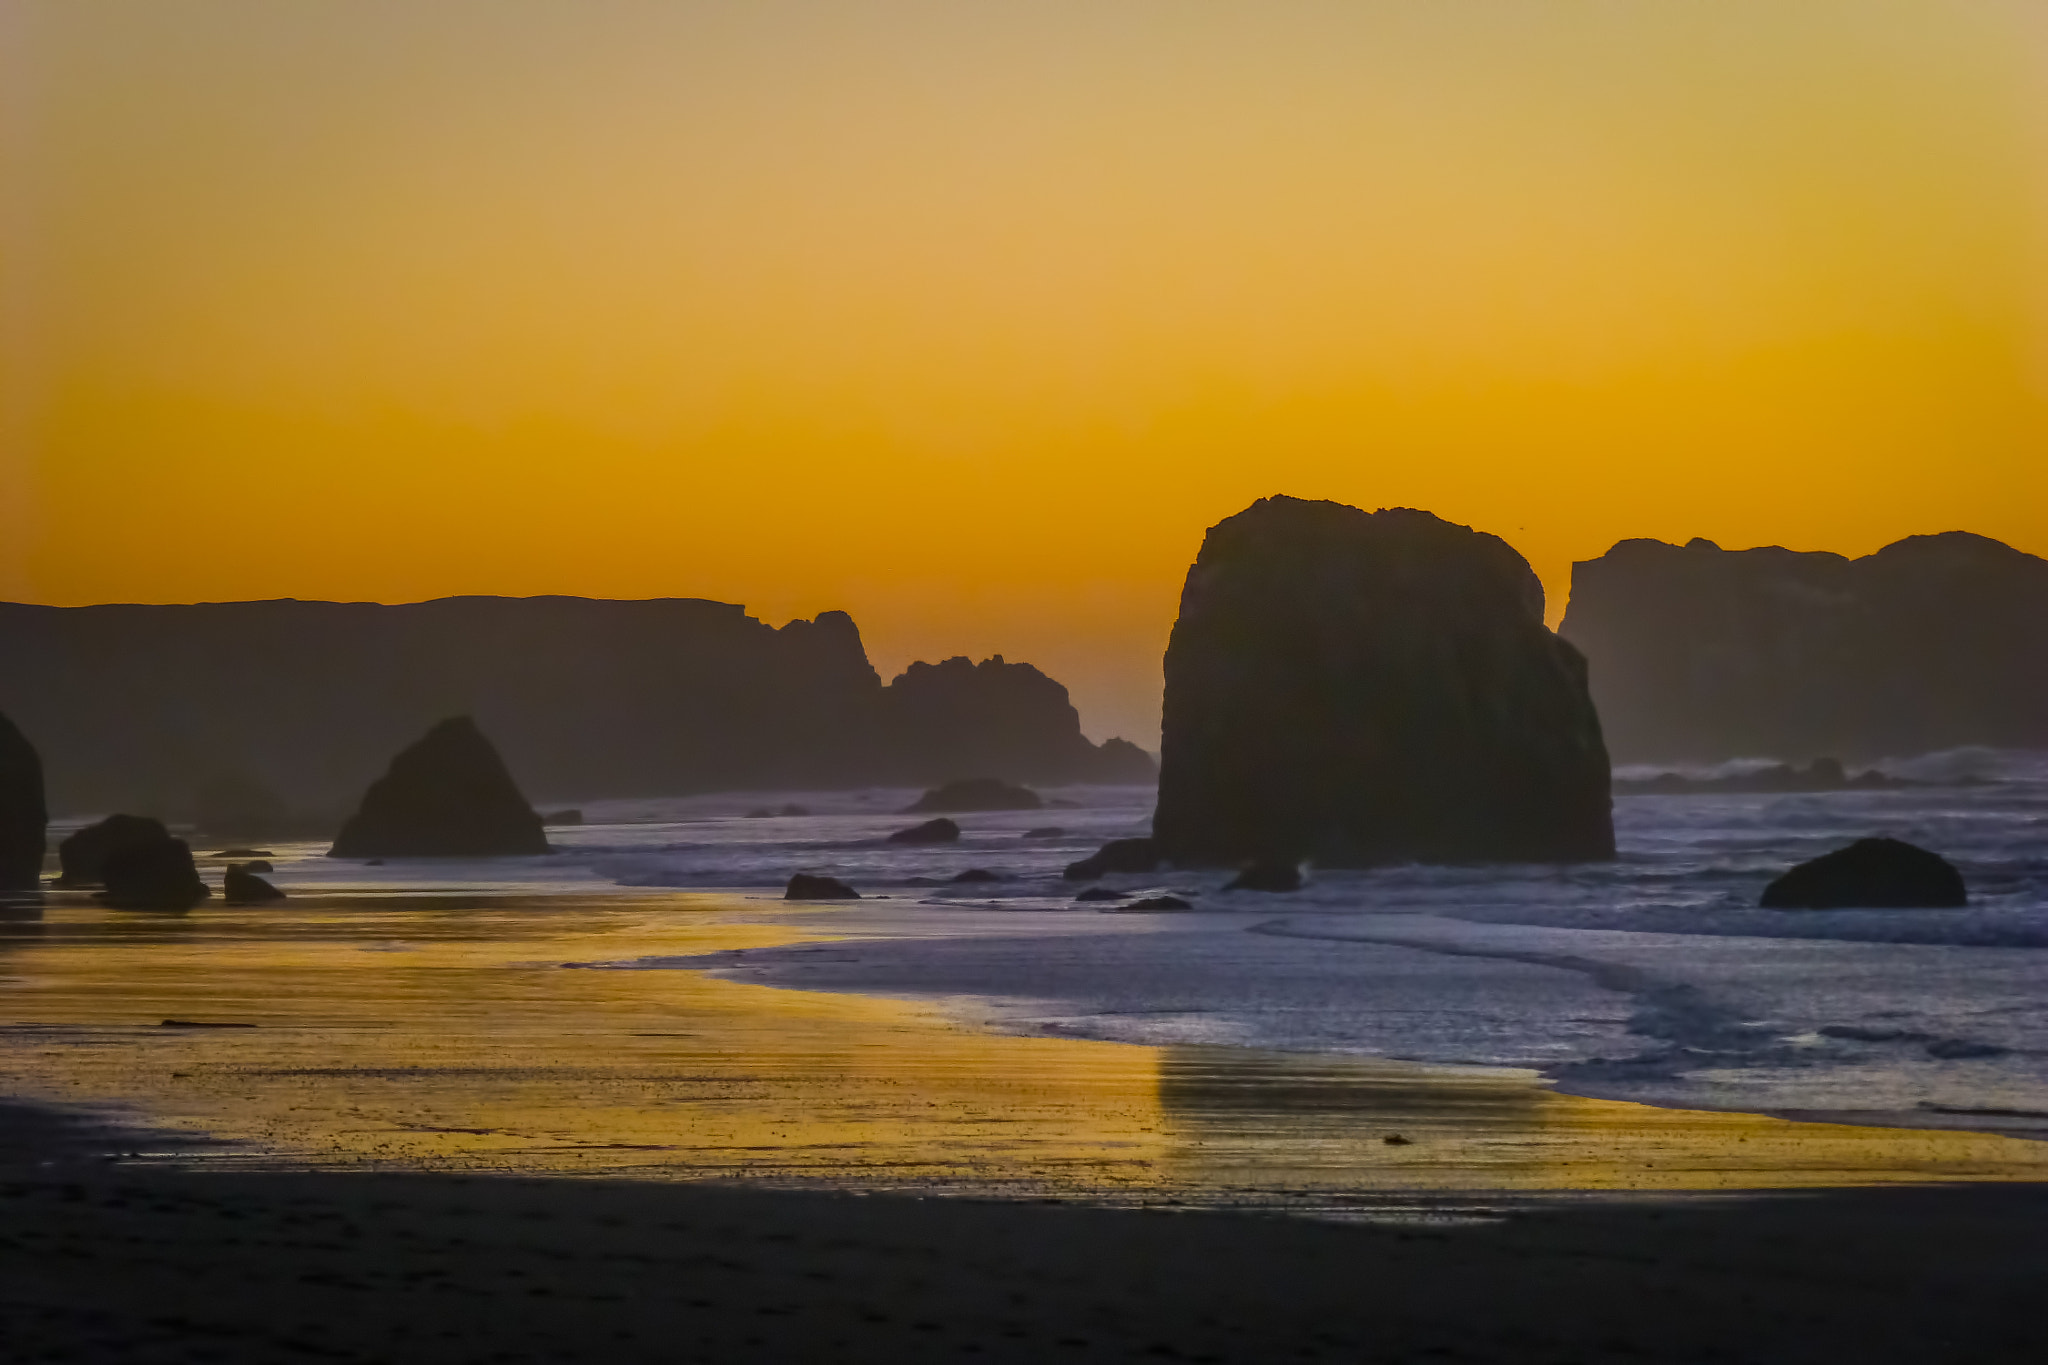 Photograph Bandon Sunset by Tom Brichta on 500px